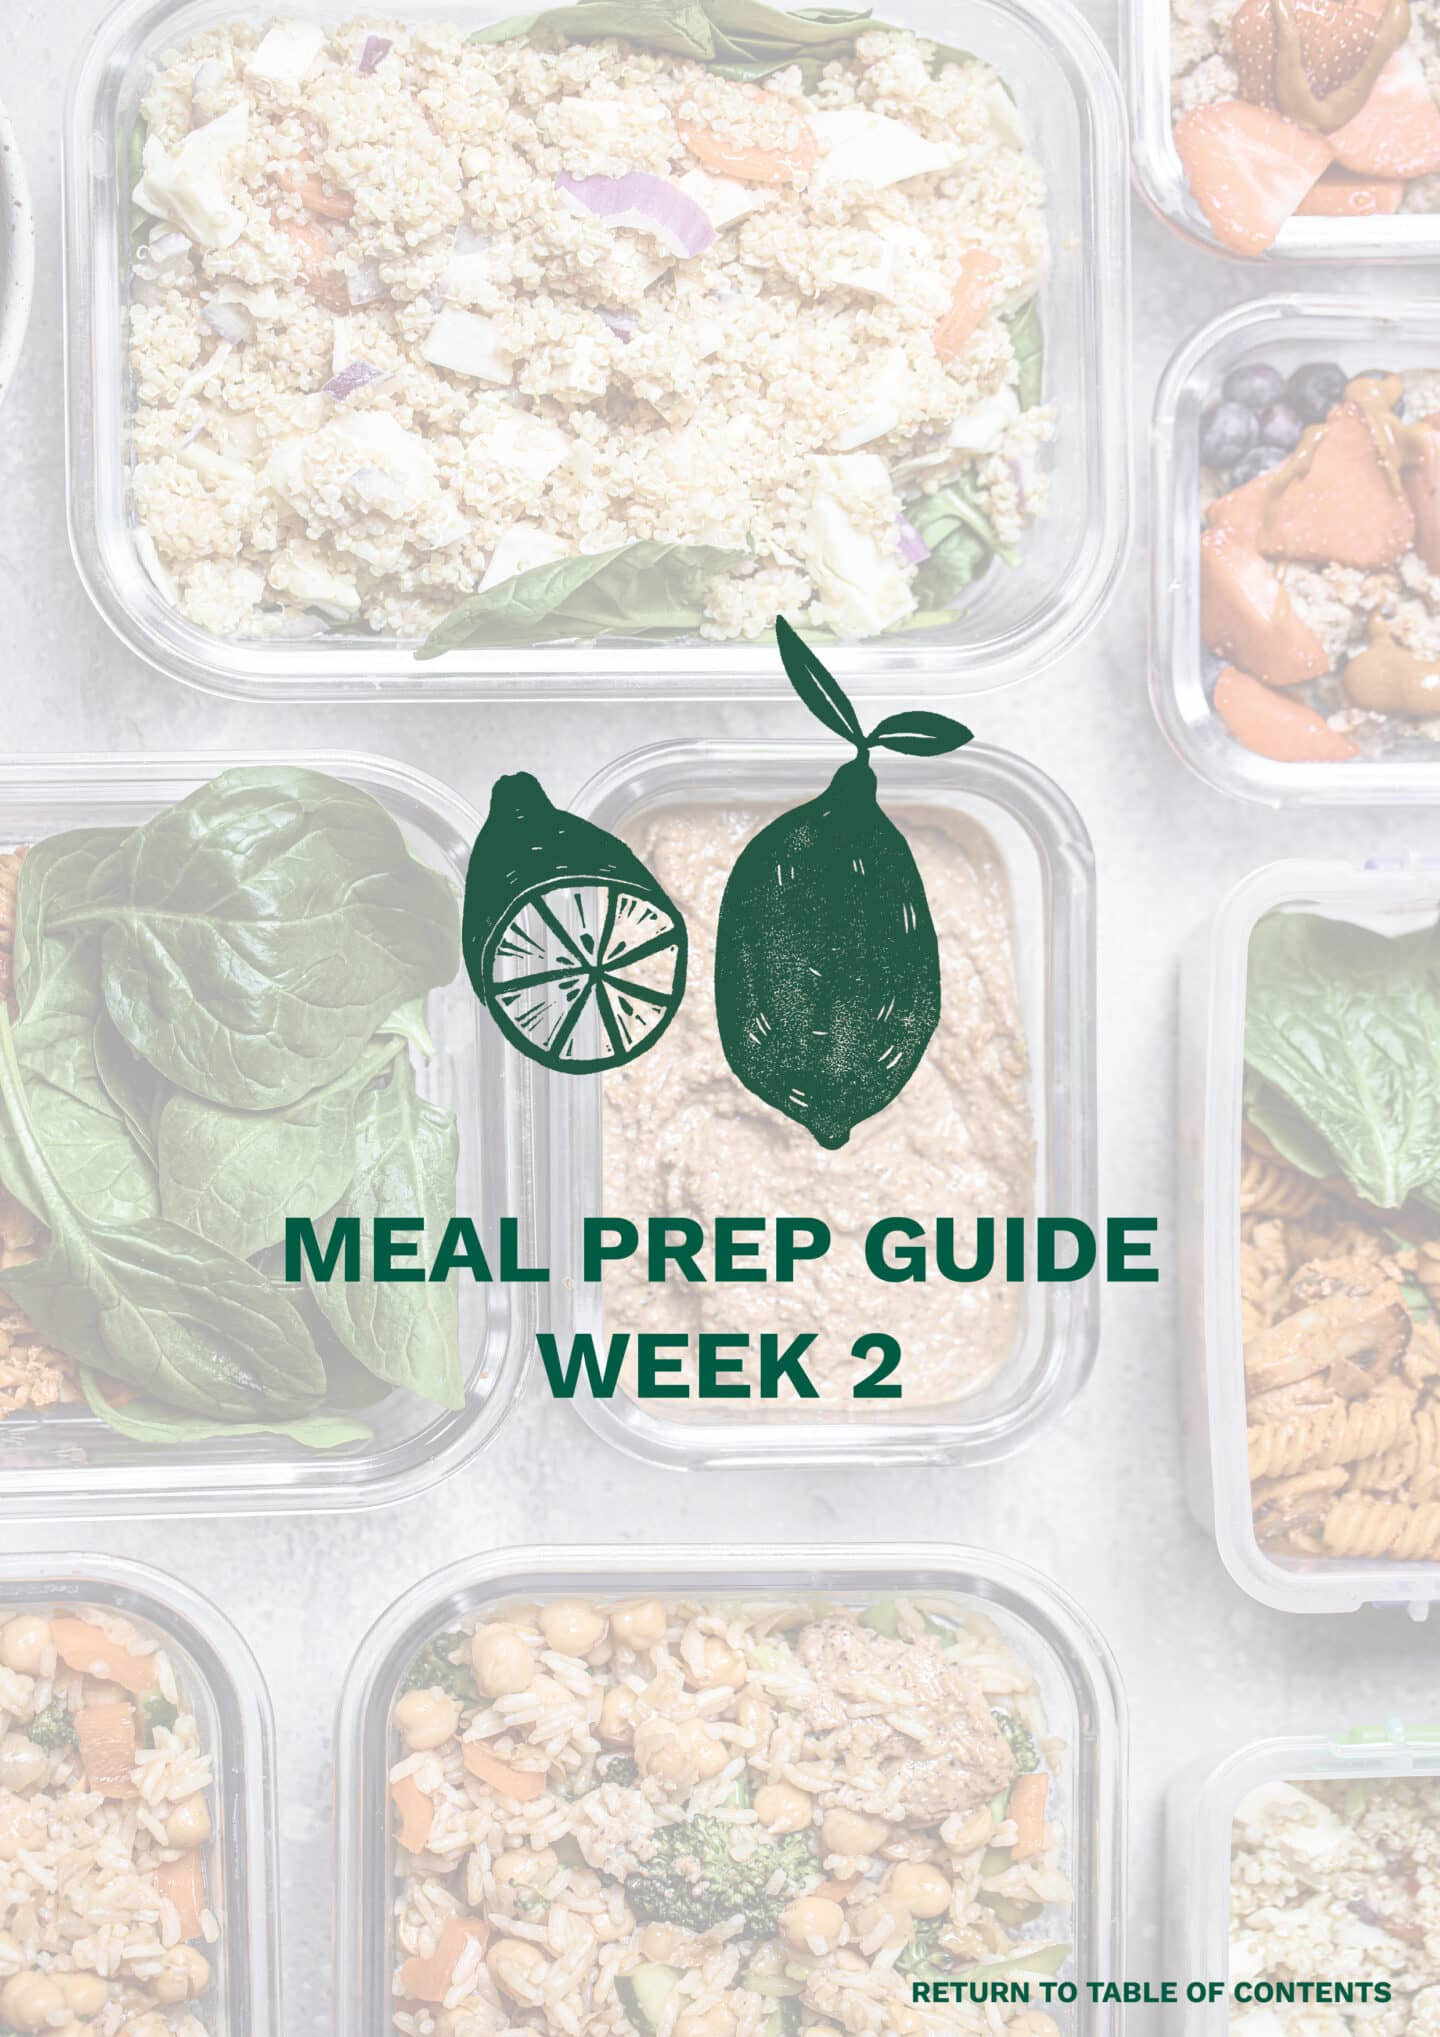 Meal prep guide cover